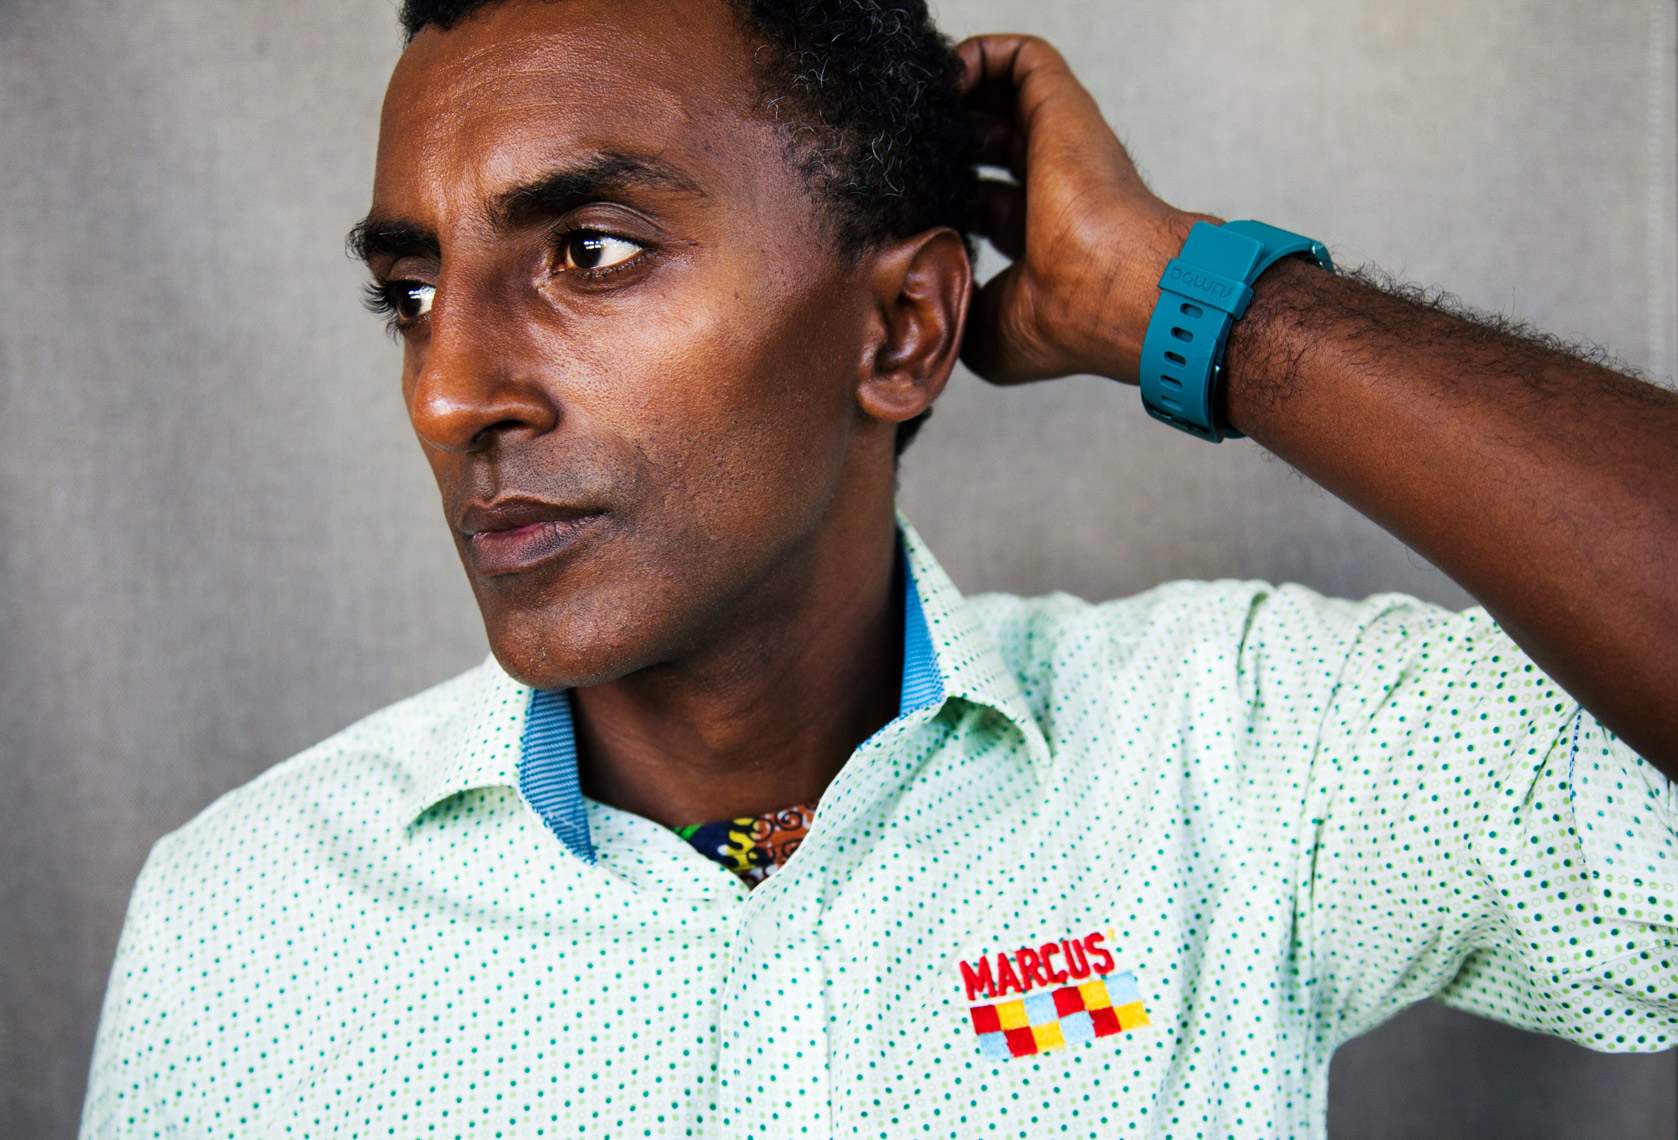 BERMUDA, Hamilton. Portrait of Chef Marcus Samuelsson at his Marcus